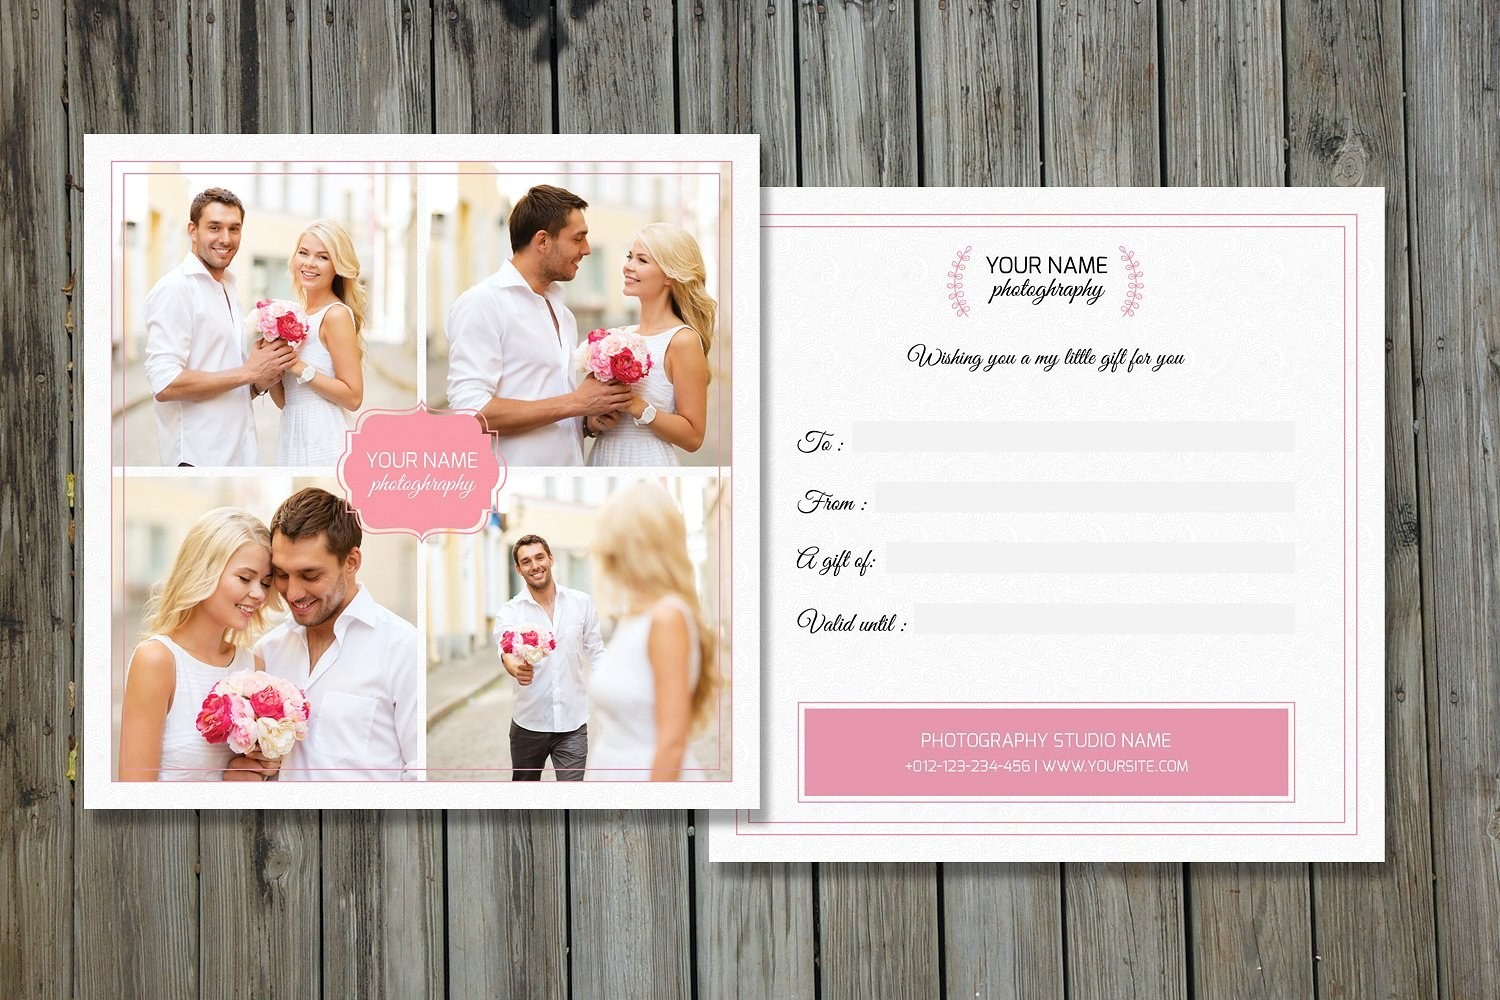 Sfedfefdadb Template Ideas With Free Photography Gift Certificate Template